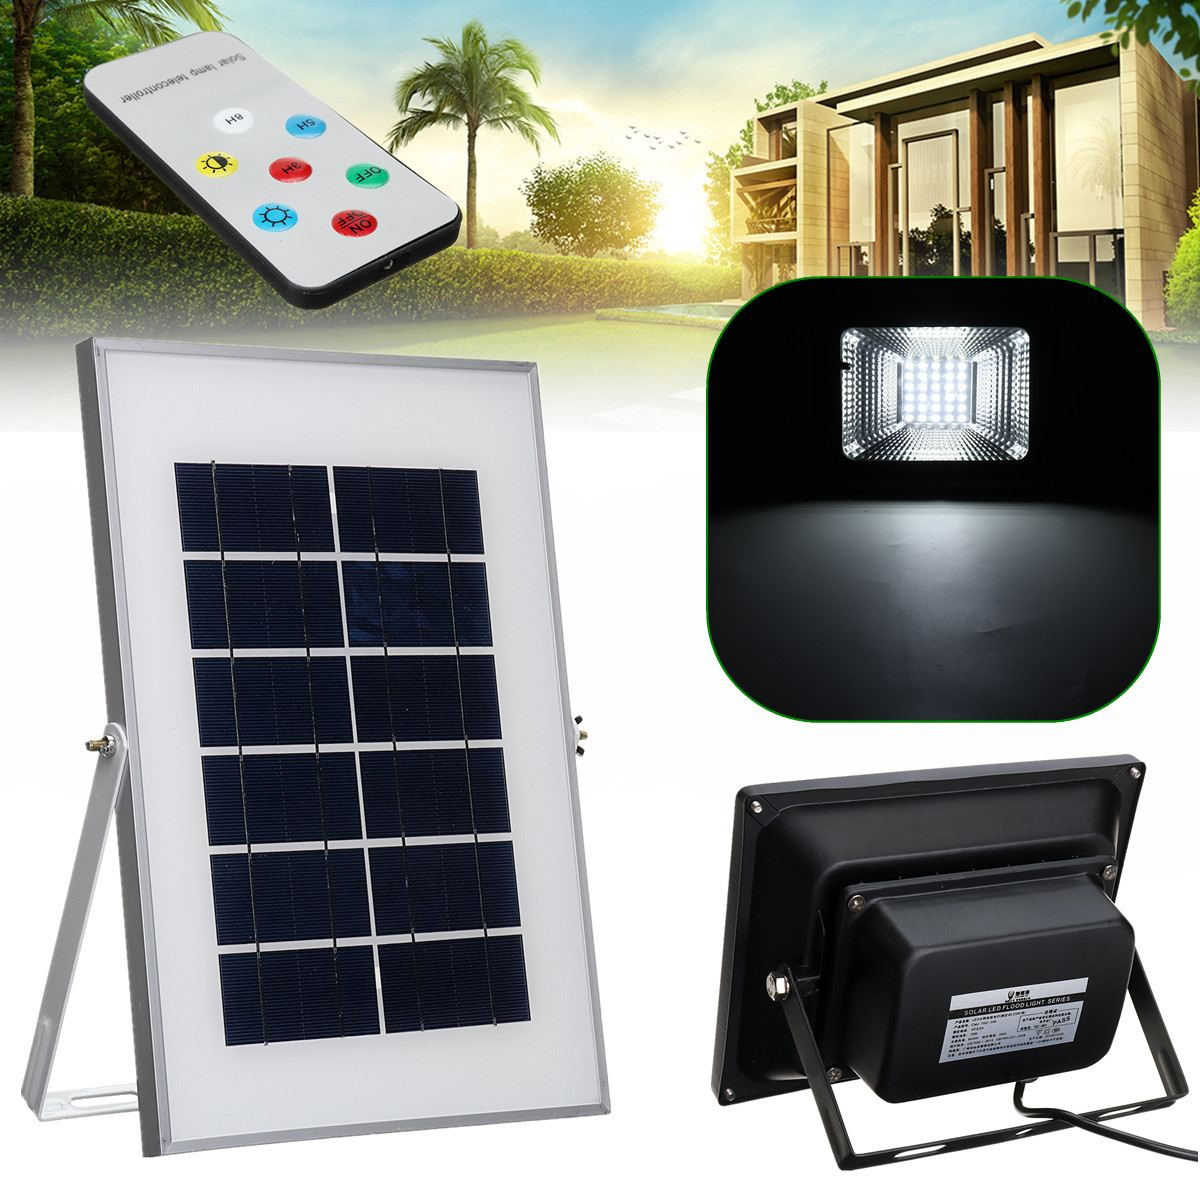 Remote Control Outdoor Garden Lawn Lighting Lamp 30 LED Solar Power Flood Light Reusable & Super Bright  Intelligent SunlightRemote Control Outdoor Garden Lawn Lighting Lamp 30 LED Solar Power Flood Light Reusable & Super Bright  Intelligent Sunlight